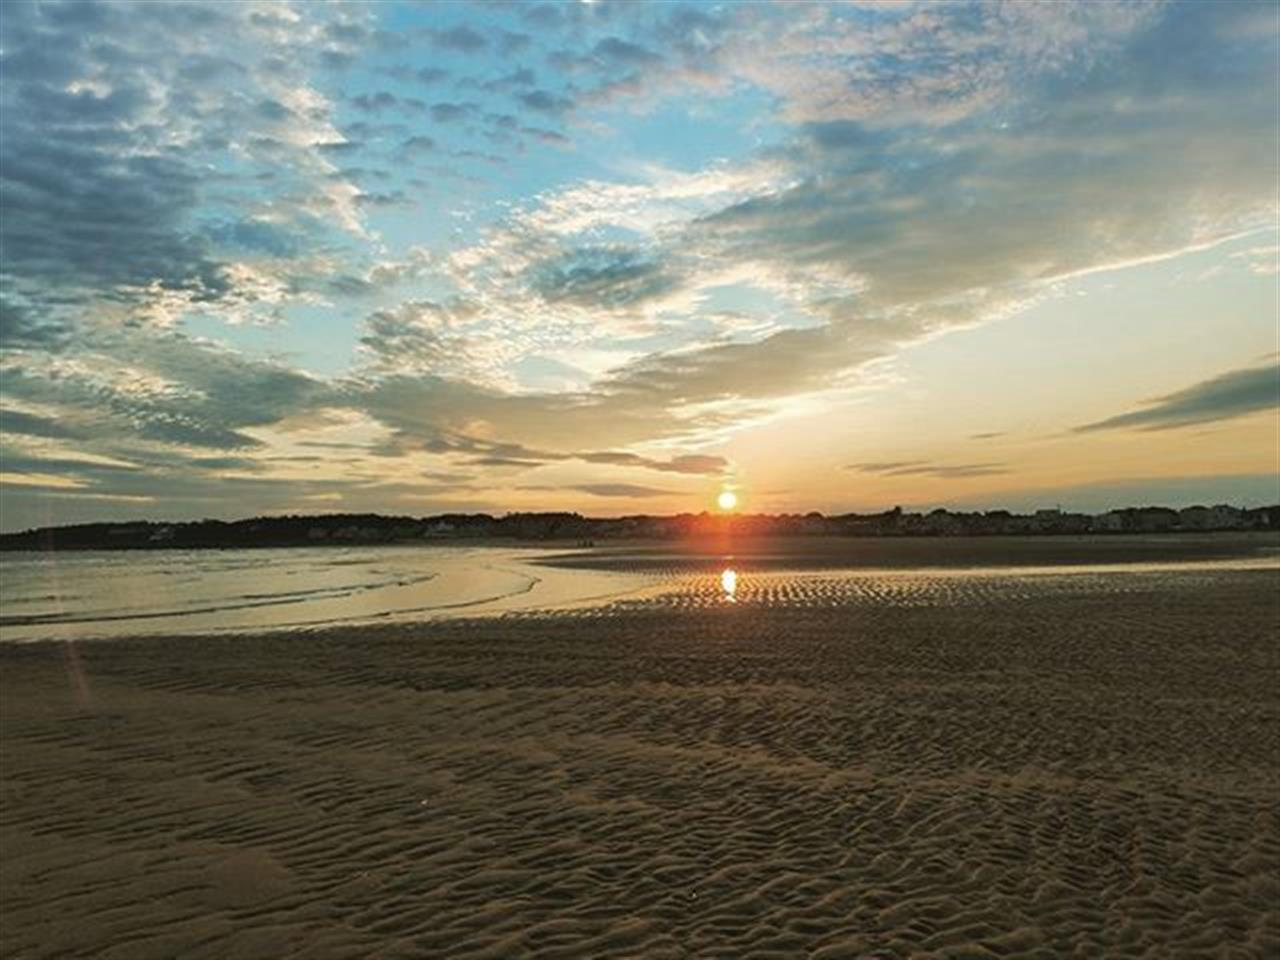 My favorite place to watch the sunset. Where in #maine do you like to watch the sunset? #higginsbeach #mainesunset #leadingRElocal